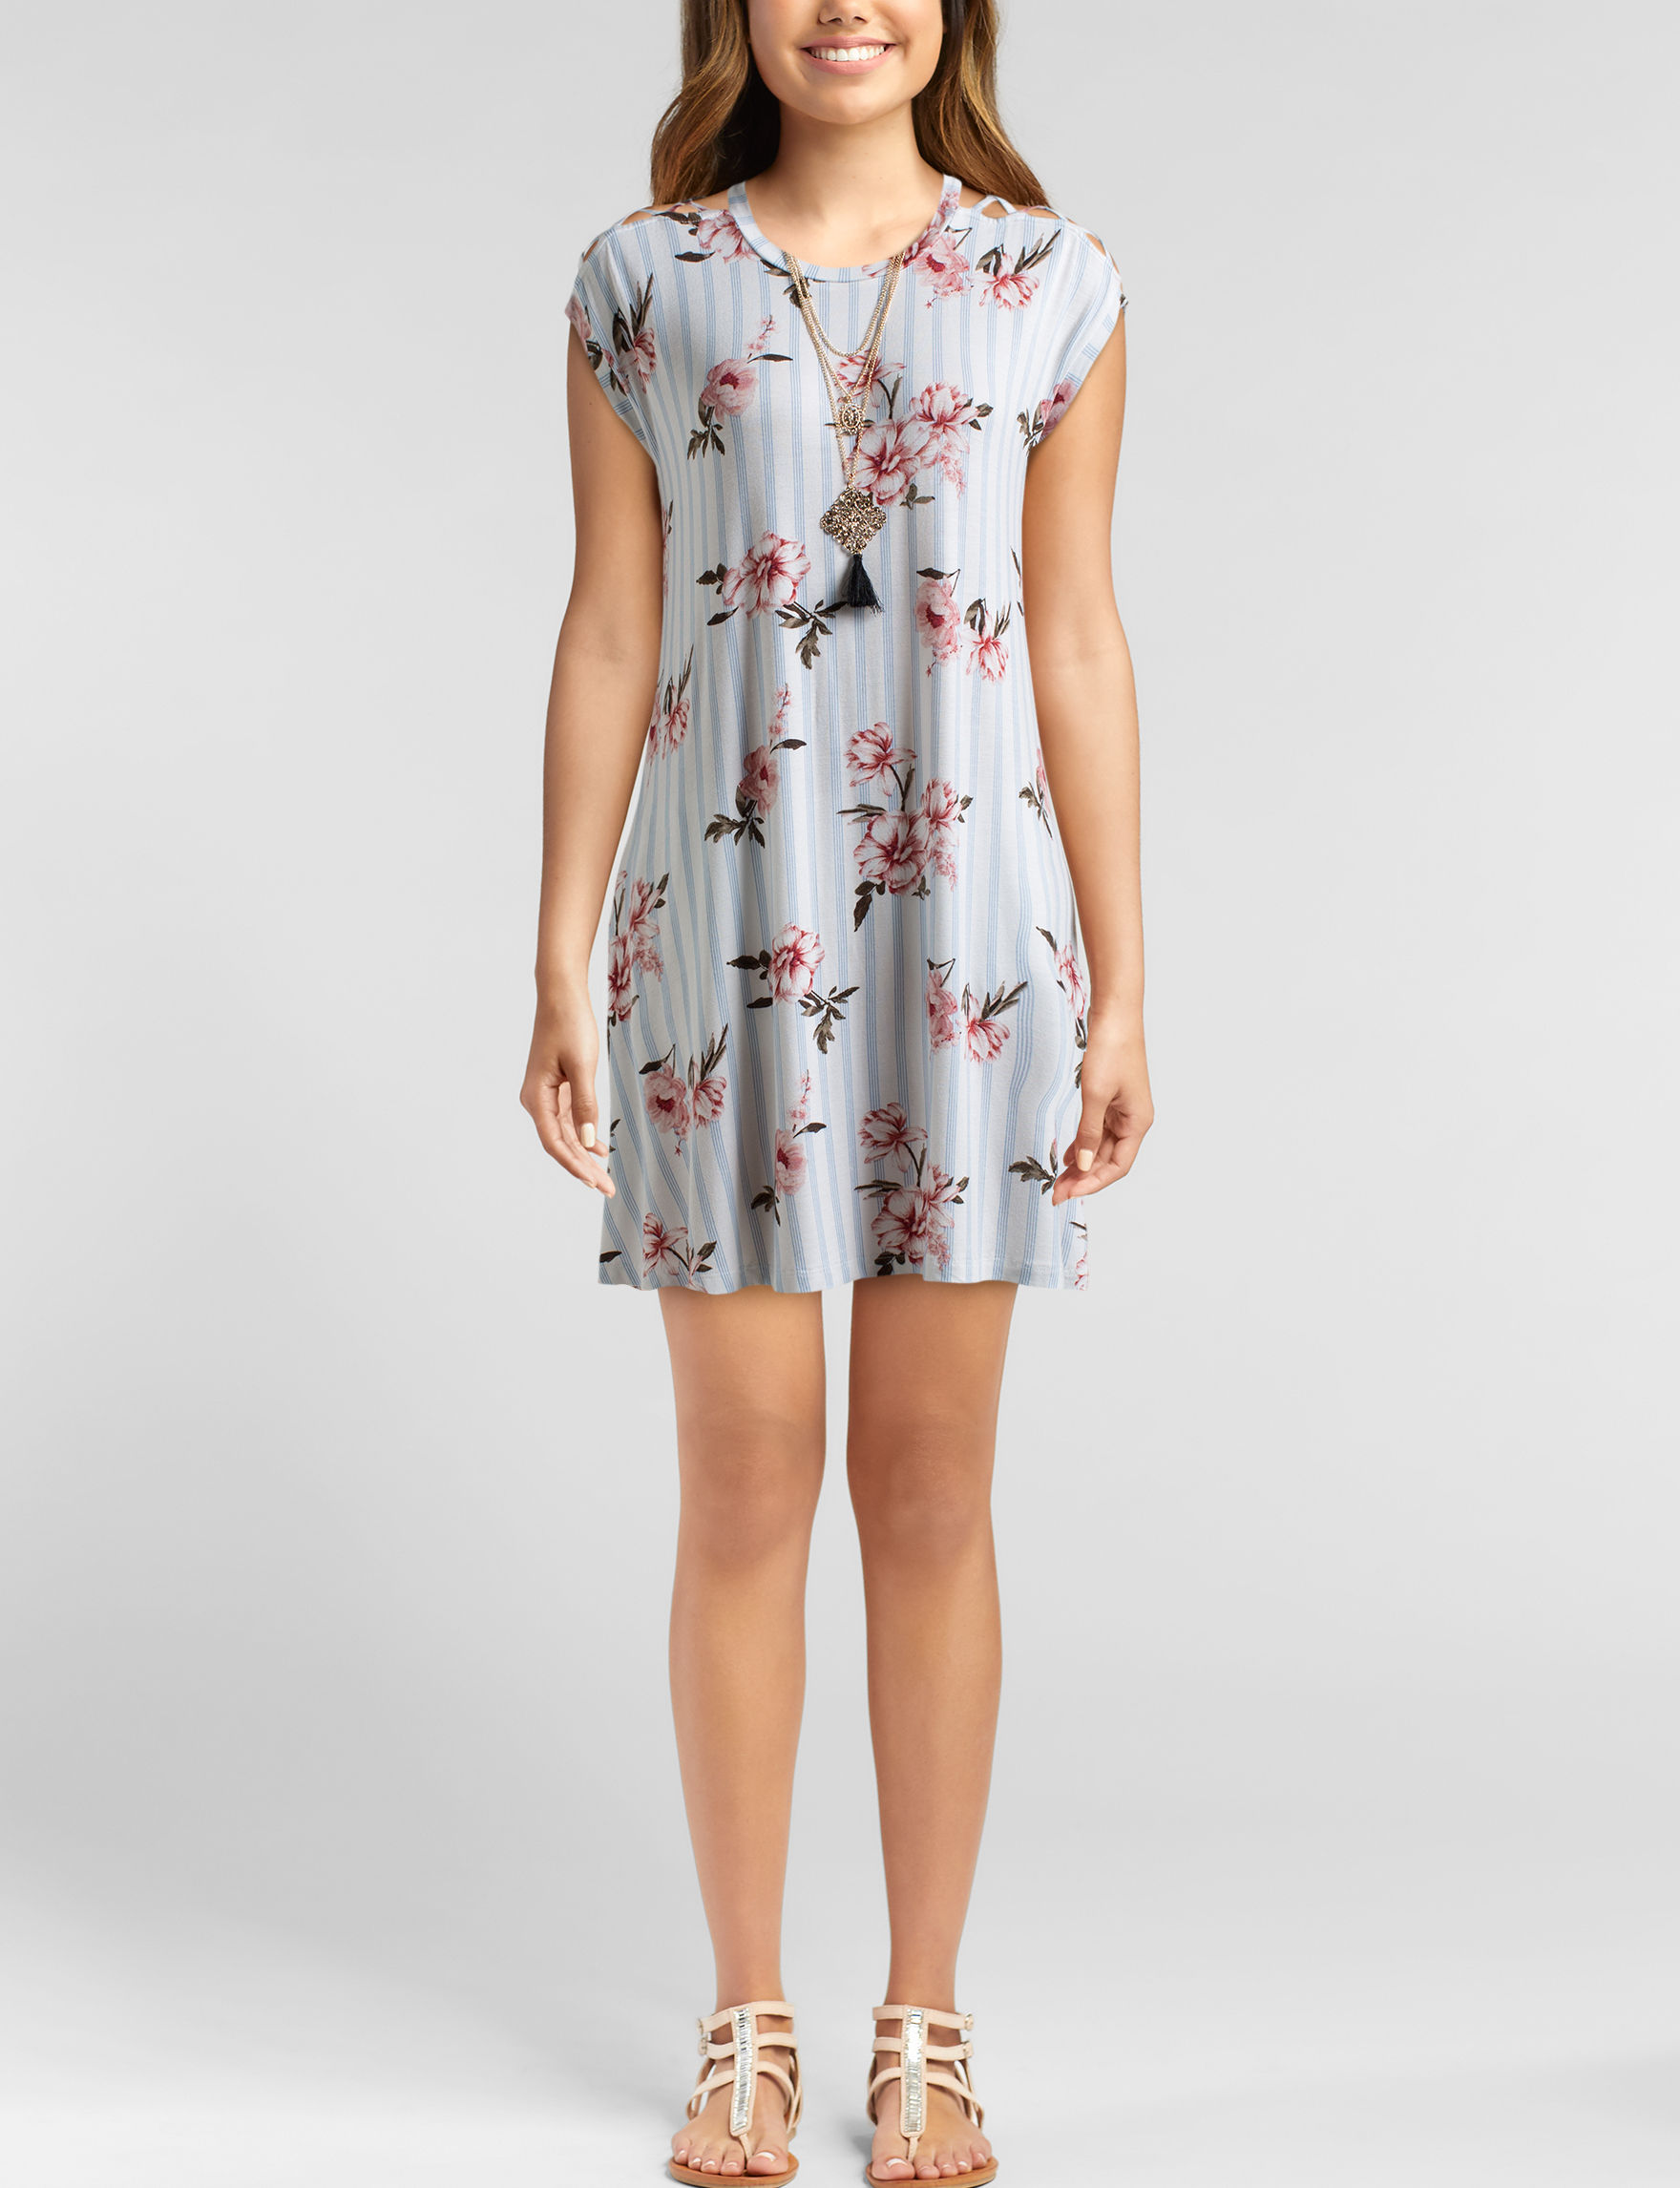 Wishful Park White Floral Everyday & Casual Shift Dresses